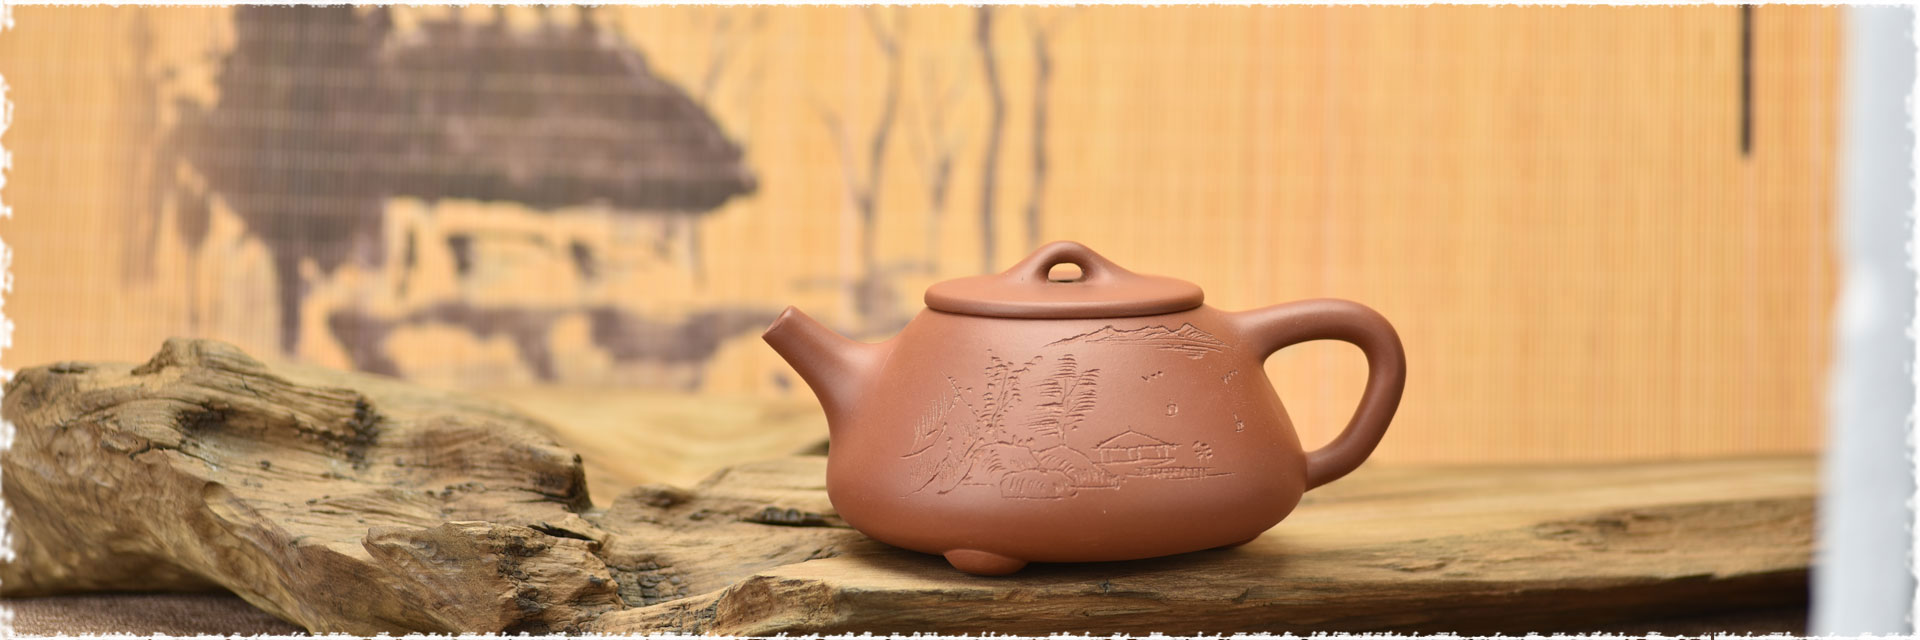 Care for and Maintain Your Yixing Zisha Teapots